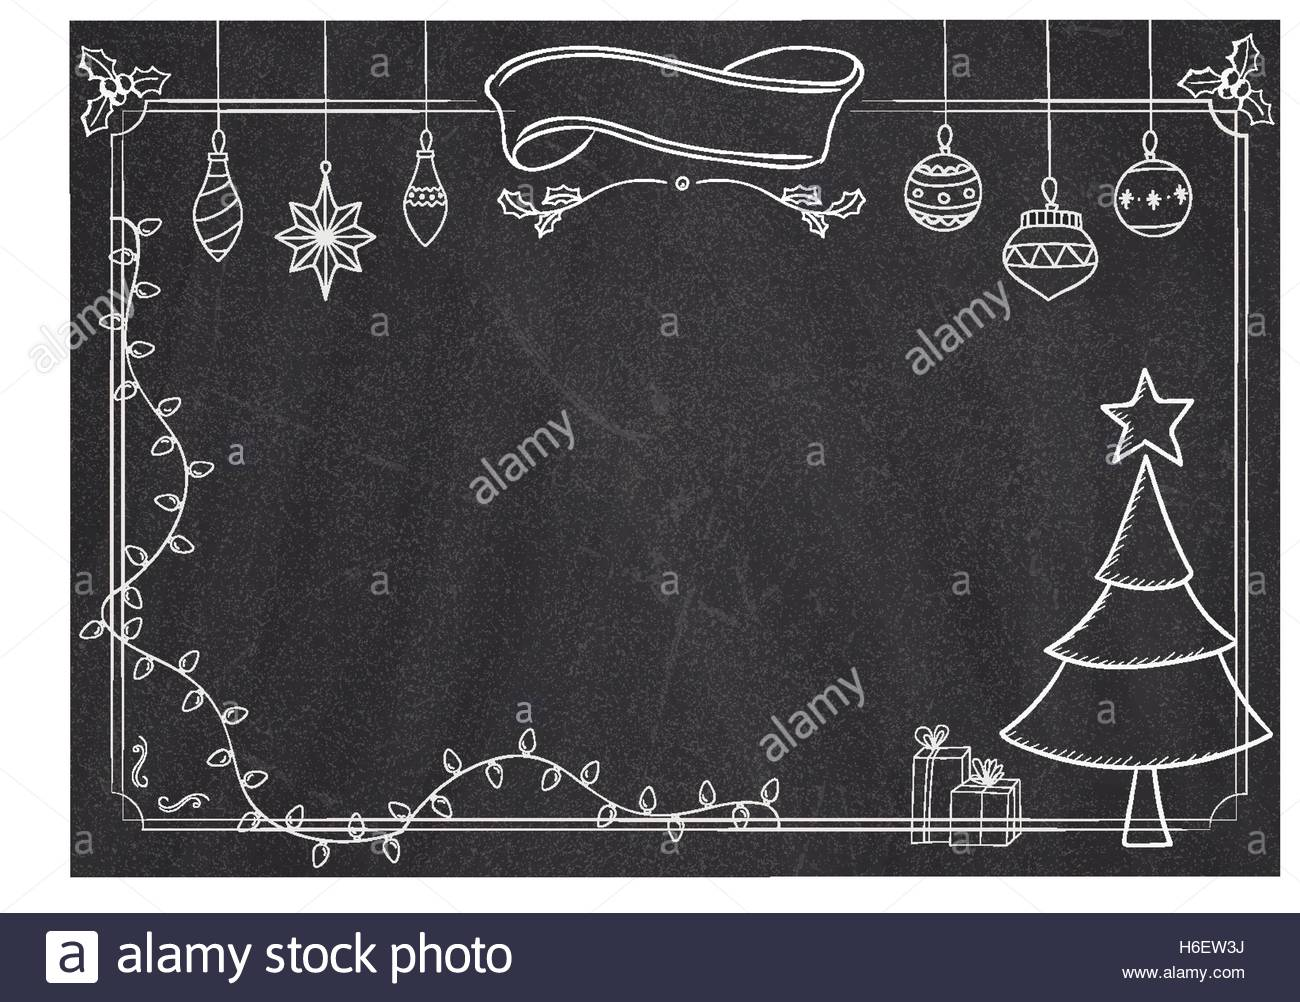 1300x1002 Cafe Menu Classic Blackboard Background With Christmas Drawing